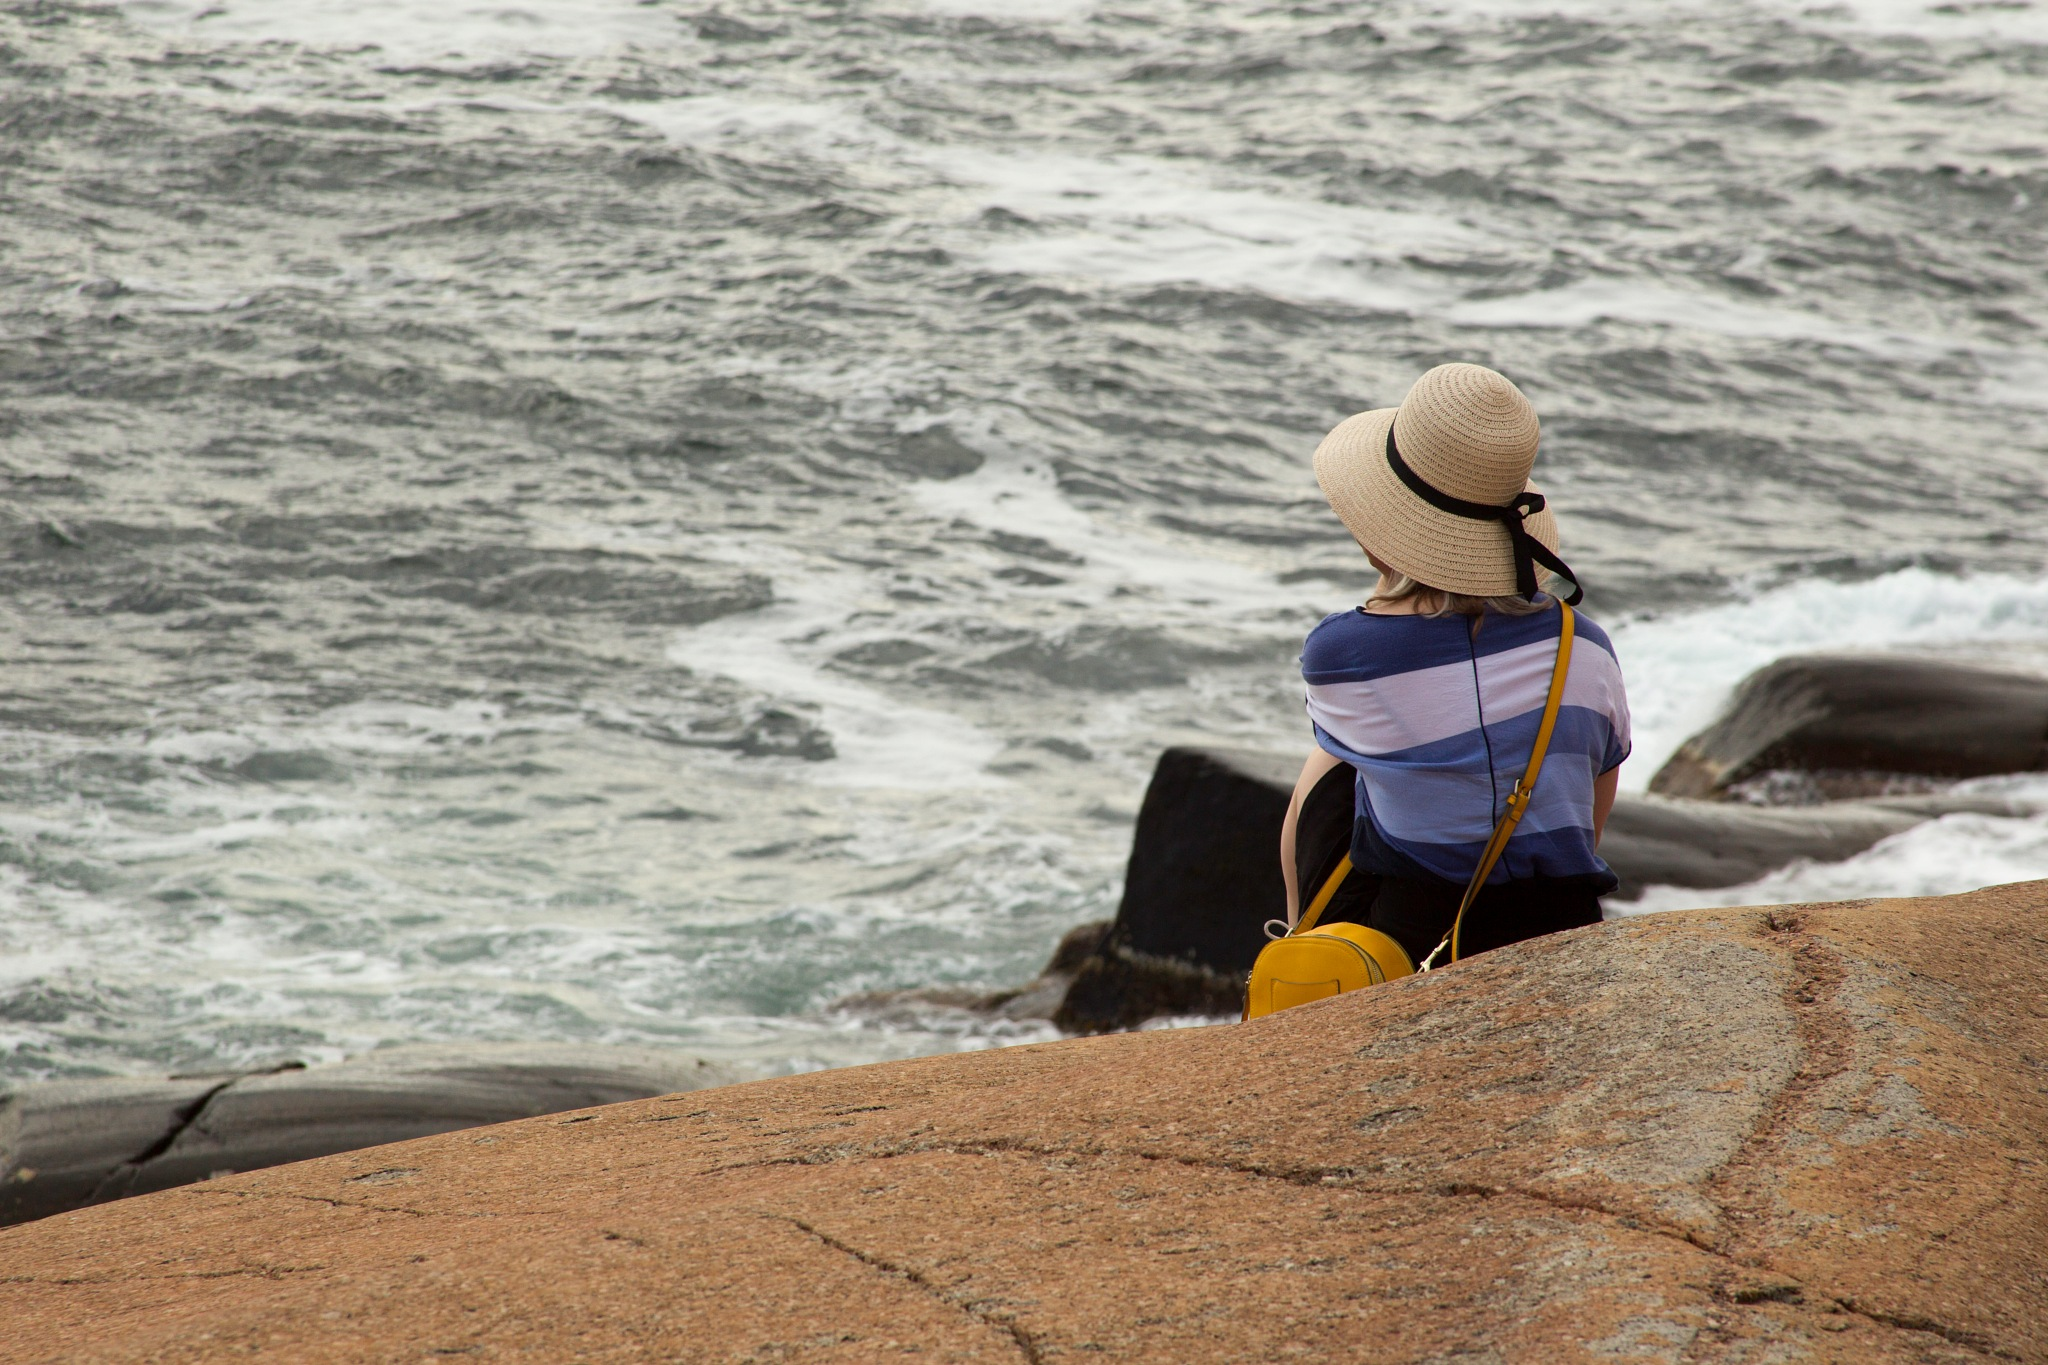 Peaceful time by the ocean by sveinsen